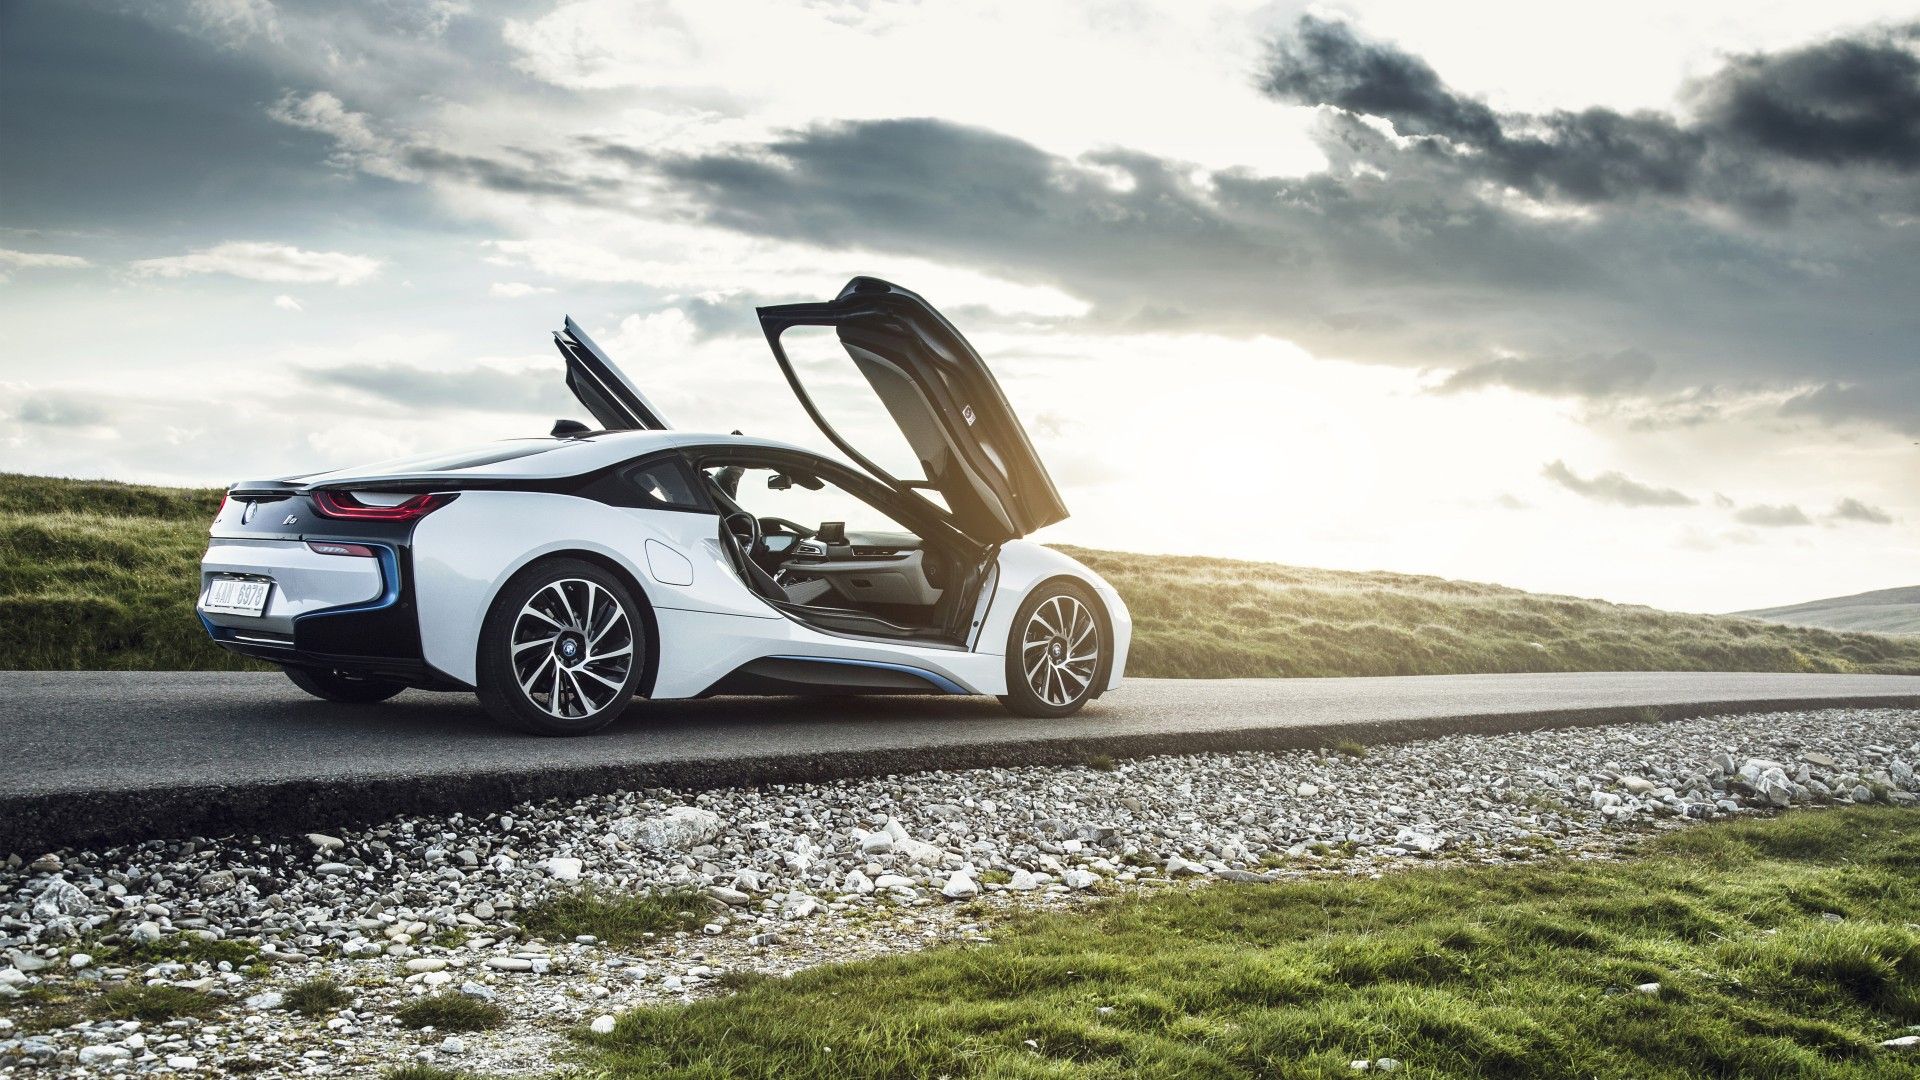 Bmw I8 Side View Wallpaper Hd Car Wallpapers Id 6004